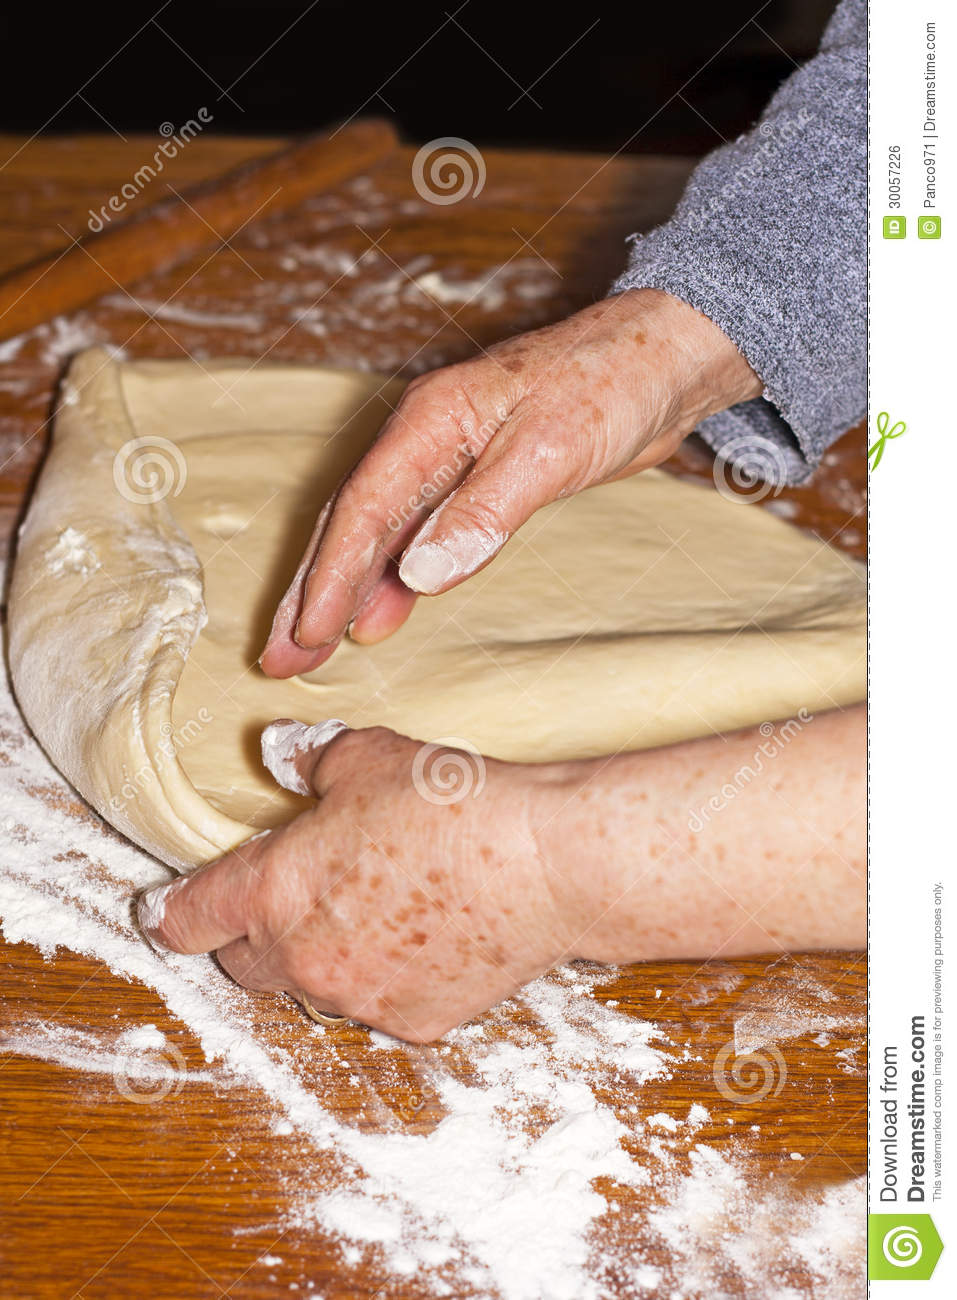 Baker Kneading Dough Royalty Free Stock Image - Image: 30057226